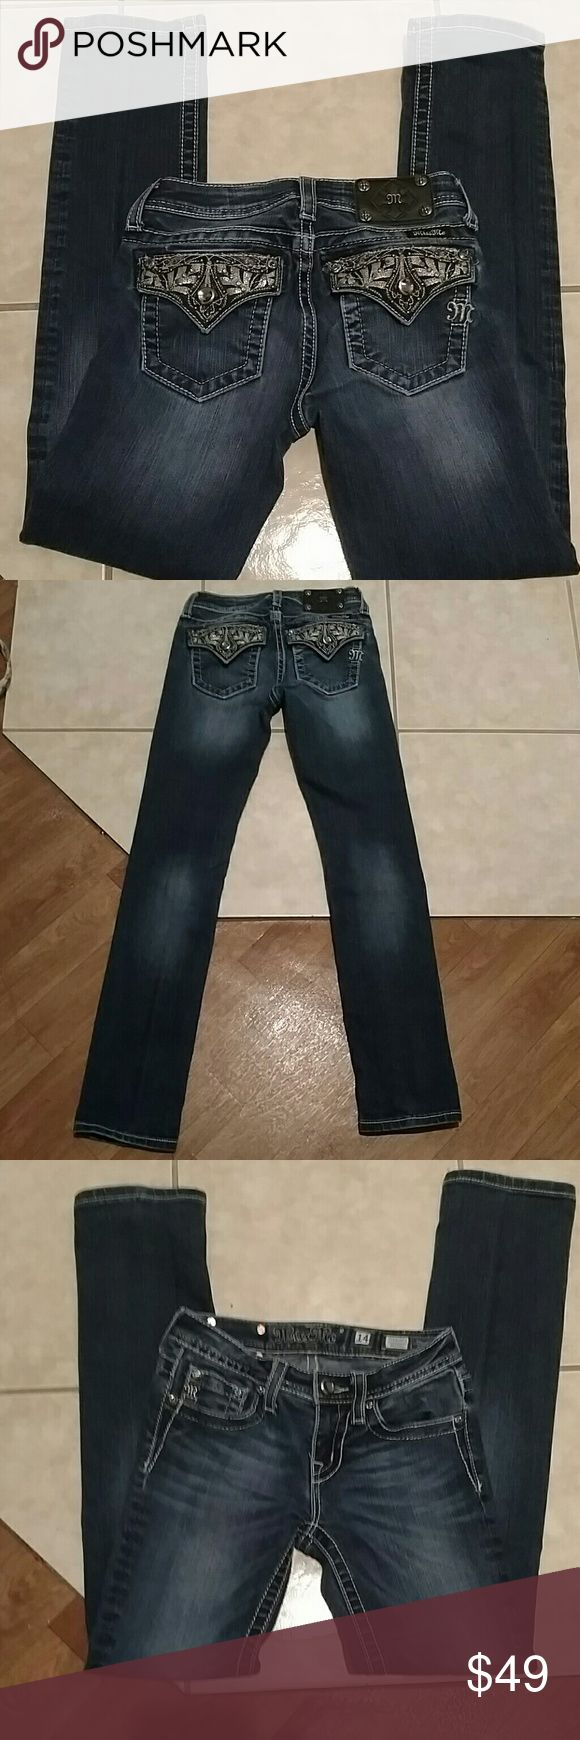 Girls miss me jeans Stunning girls size 14 miss me jeans in perfect condition. Skinny cut with a inseam of 30 inches. Rise is 7 inches and waist flat measures 13 inches. These would probably fit a woman's size 23 as well. 98% cotton 2% elastane Miss Me Bottoms Jeans